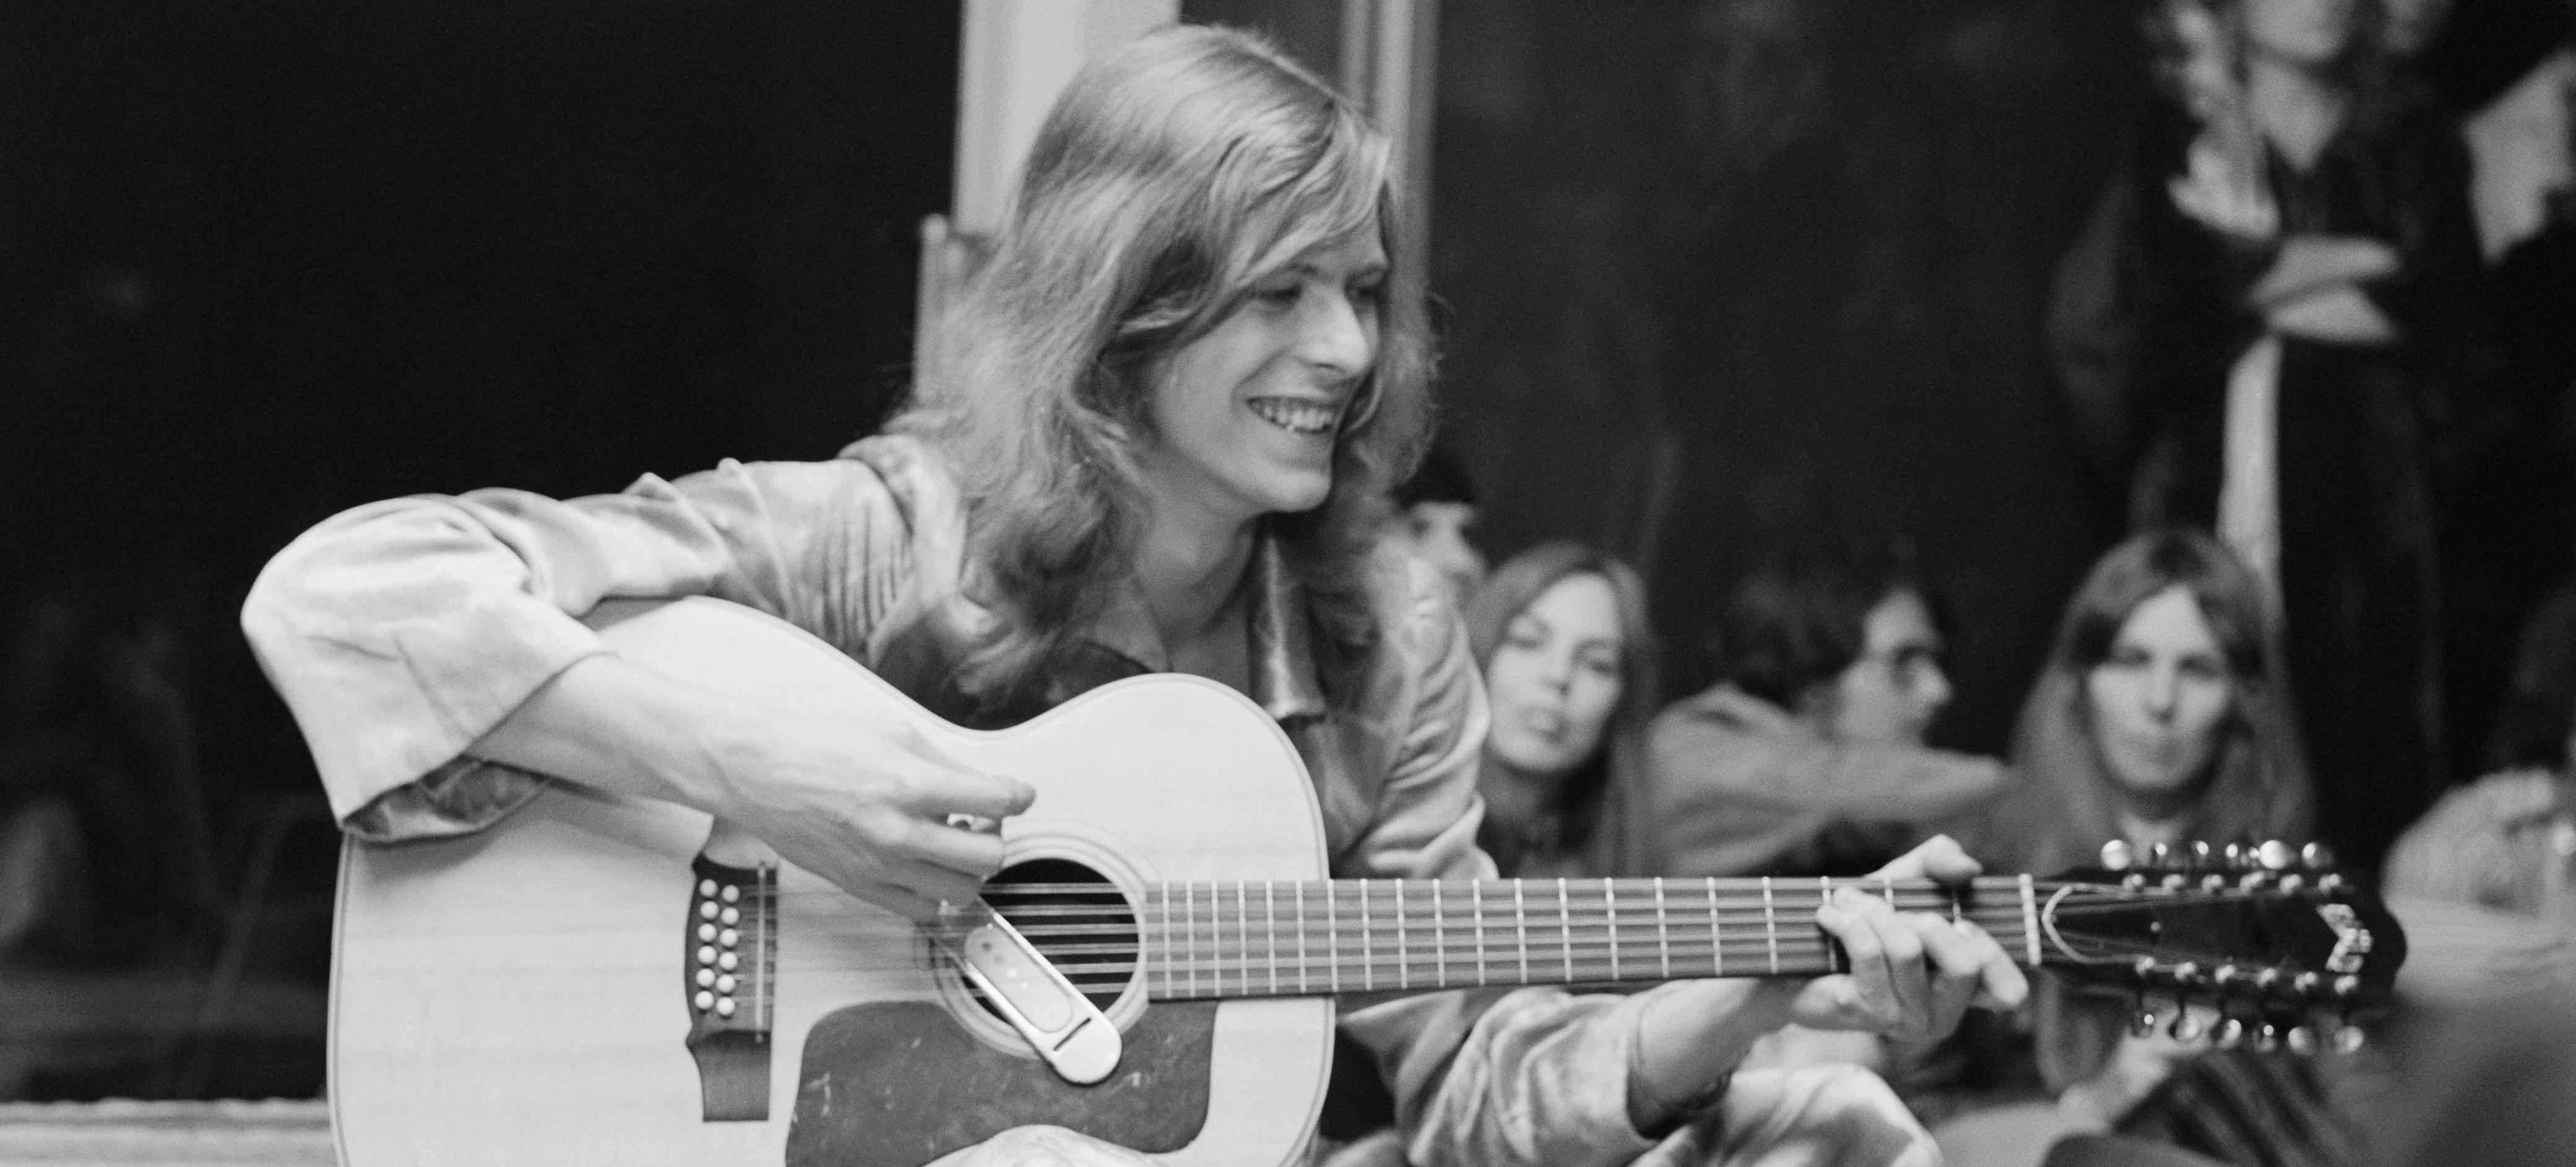 David Bowie jams at a party thrown by publicist Rodney Bingenheimer at lawyer Paul Figen's house in January 1971, in Los Angeles, California. (Photo by Earl Leaf/Michael Ochs Archives/Getty Images)